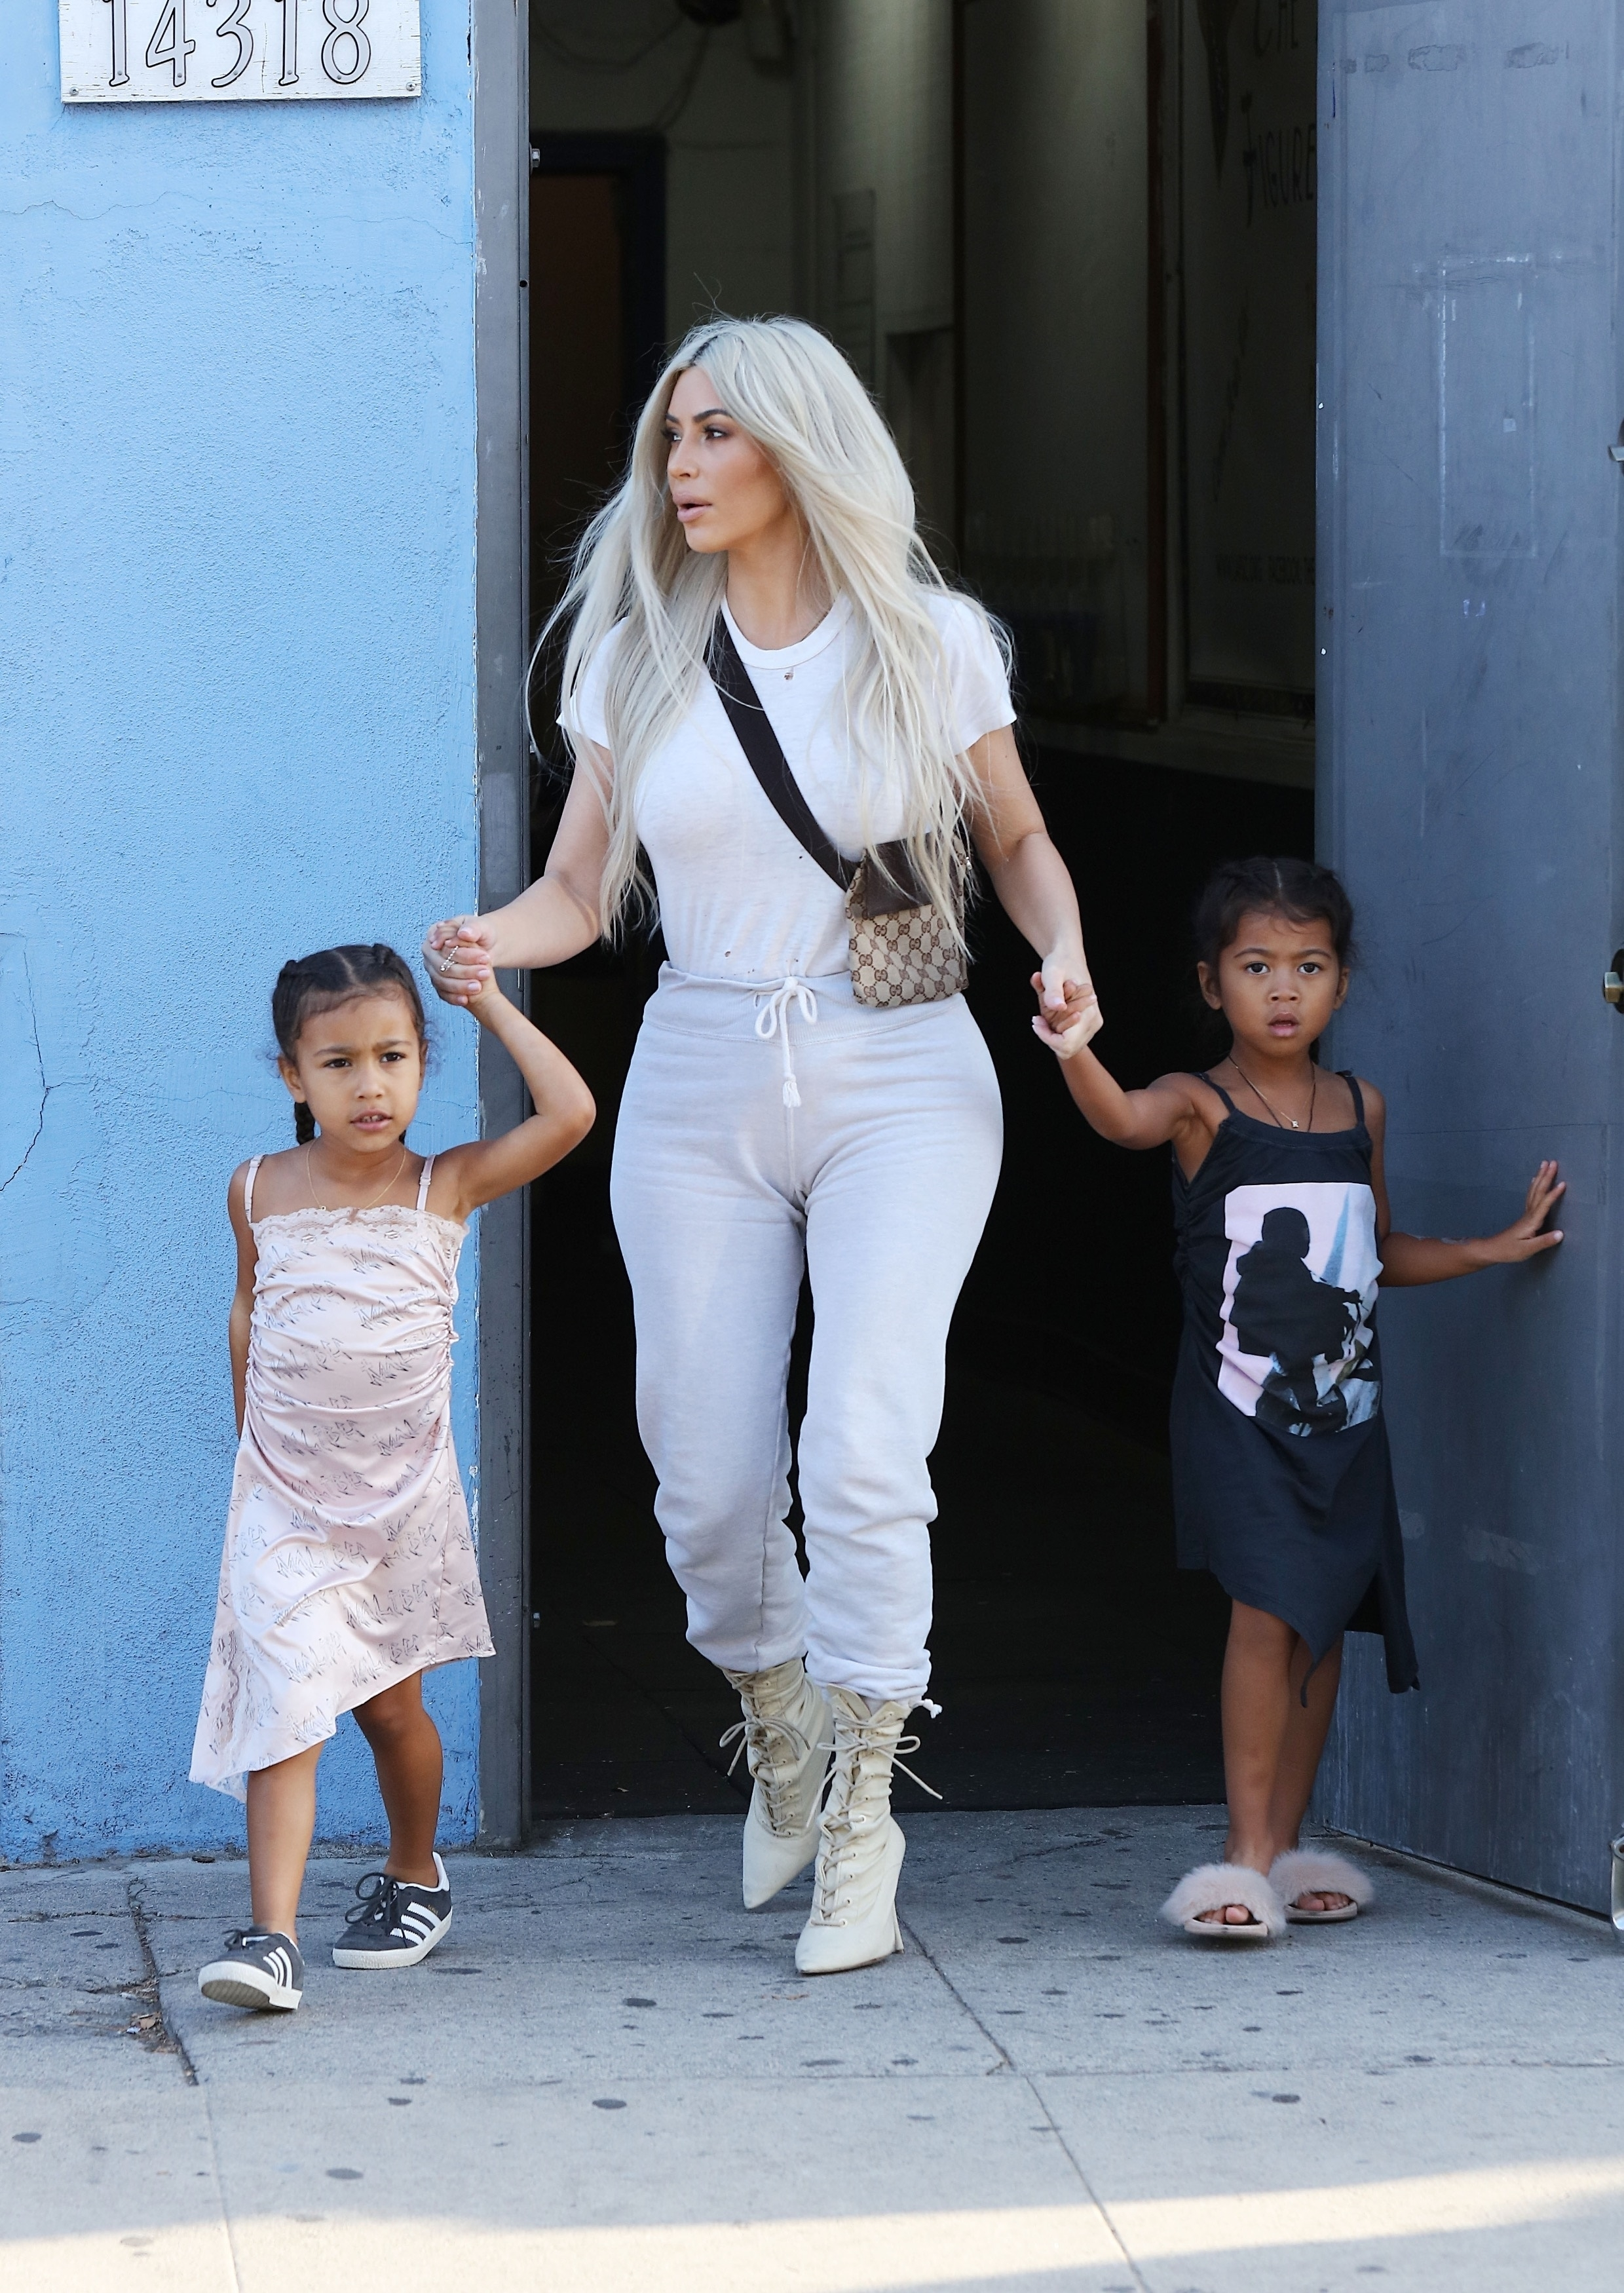 Kim Kardashian and Kanye West exit Iceland Ice Skating Center in Van Nuys with their children North and Saint West on Sept. 21, 2017 